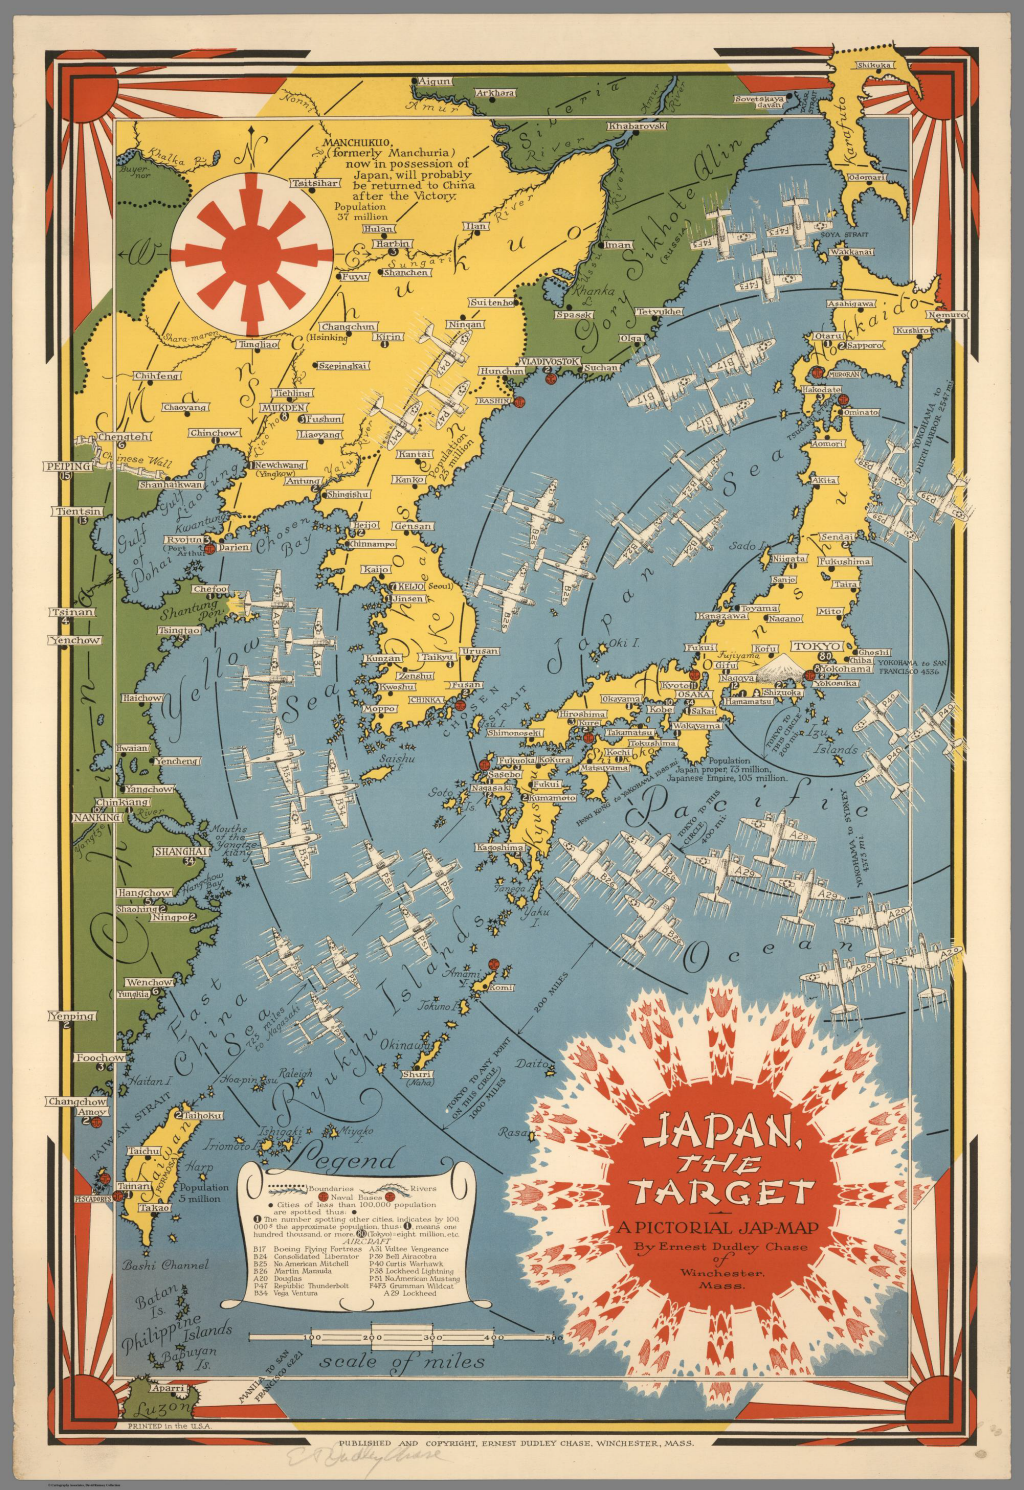 Historical maps of japan japan the target an american wii propaganda map gumiabroncs Image collections